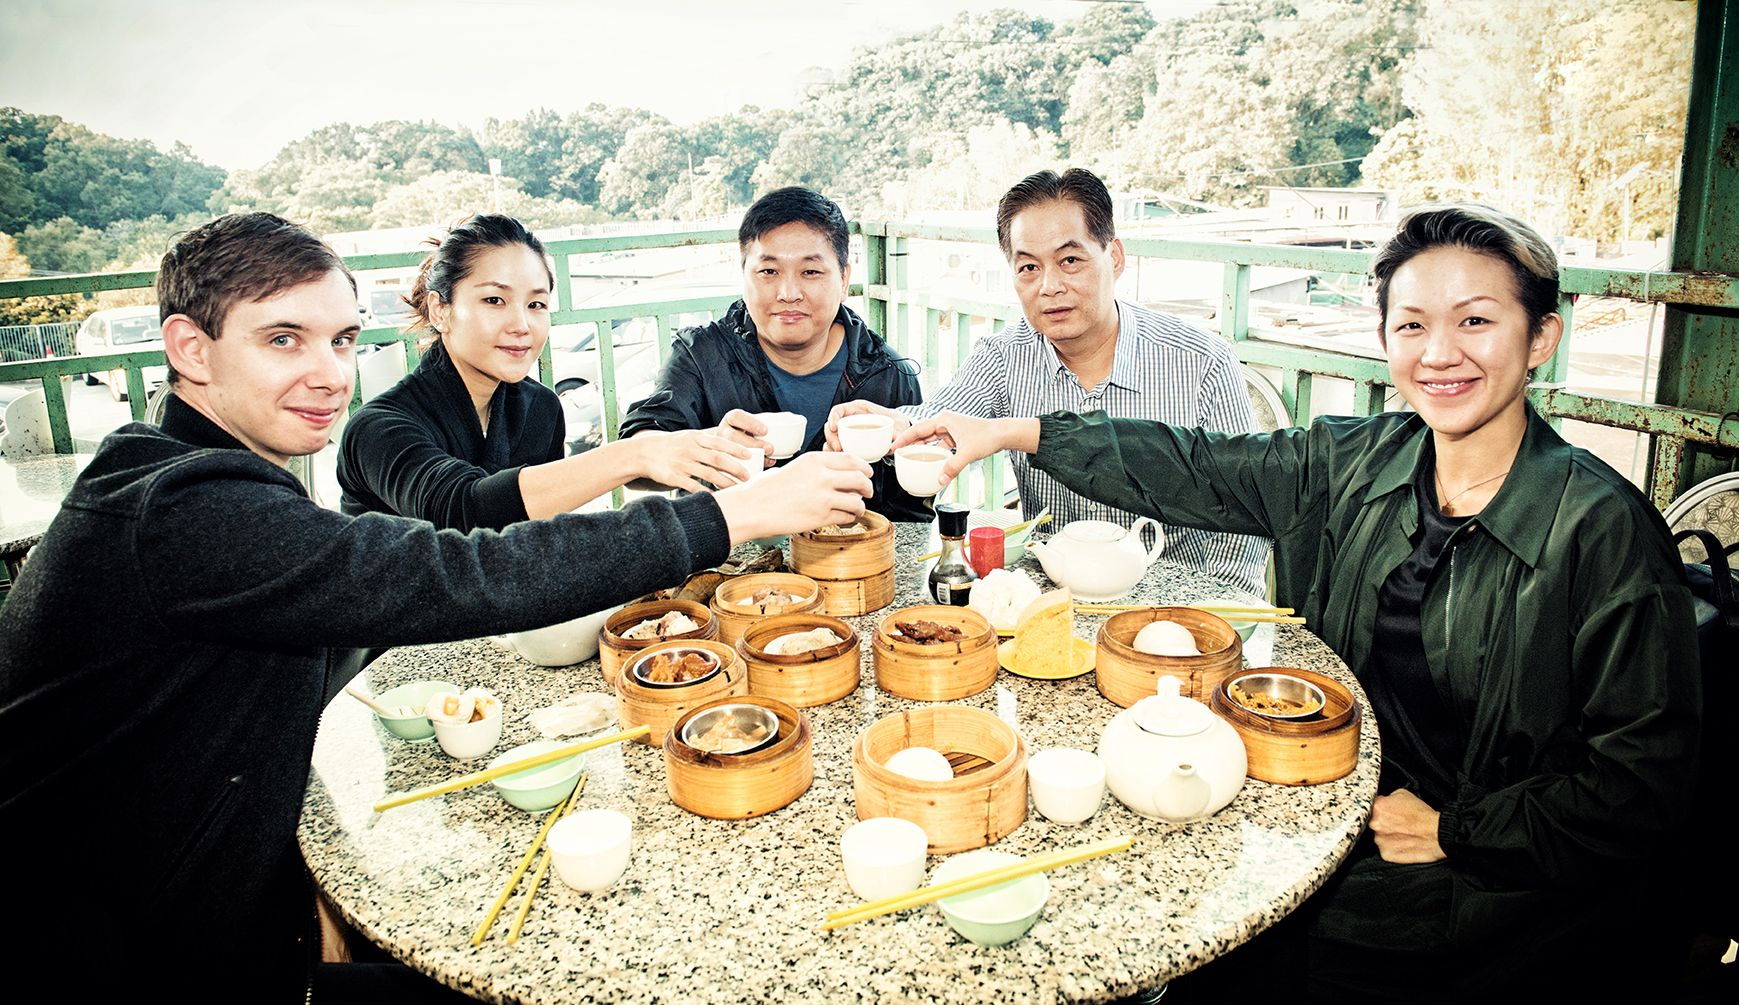 T.Dining Presents #DimSumDuets: 6 Chefs And The Future Of Yum Cha